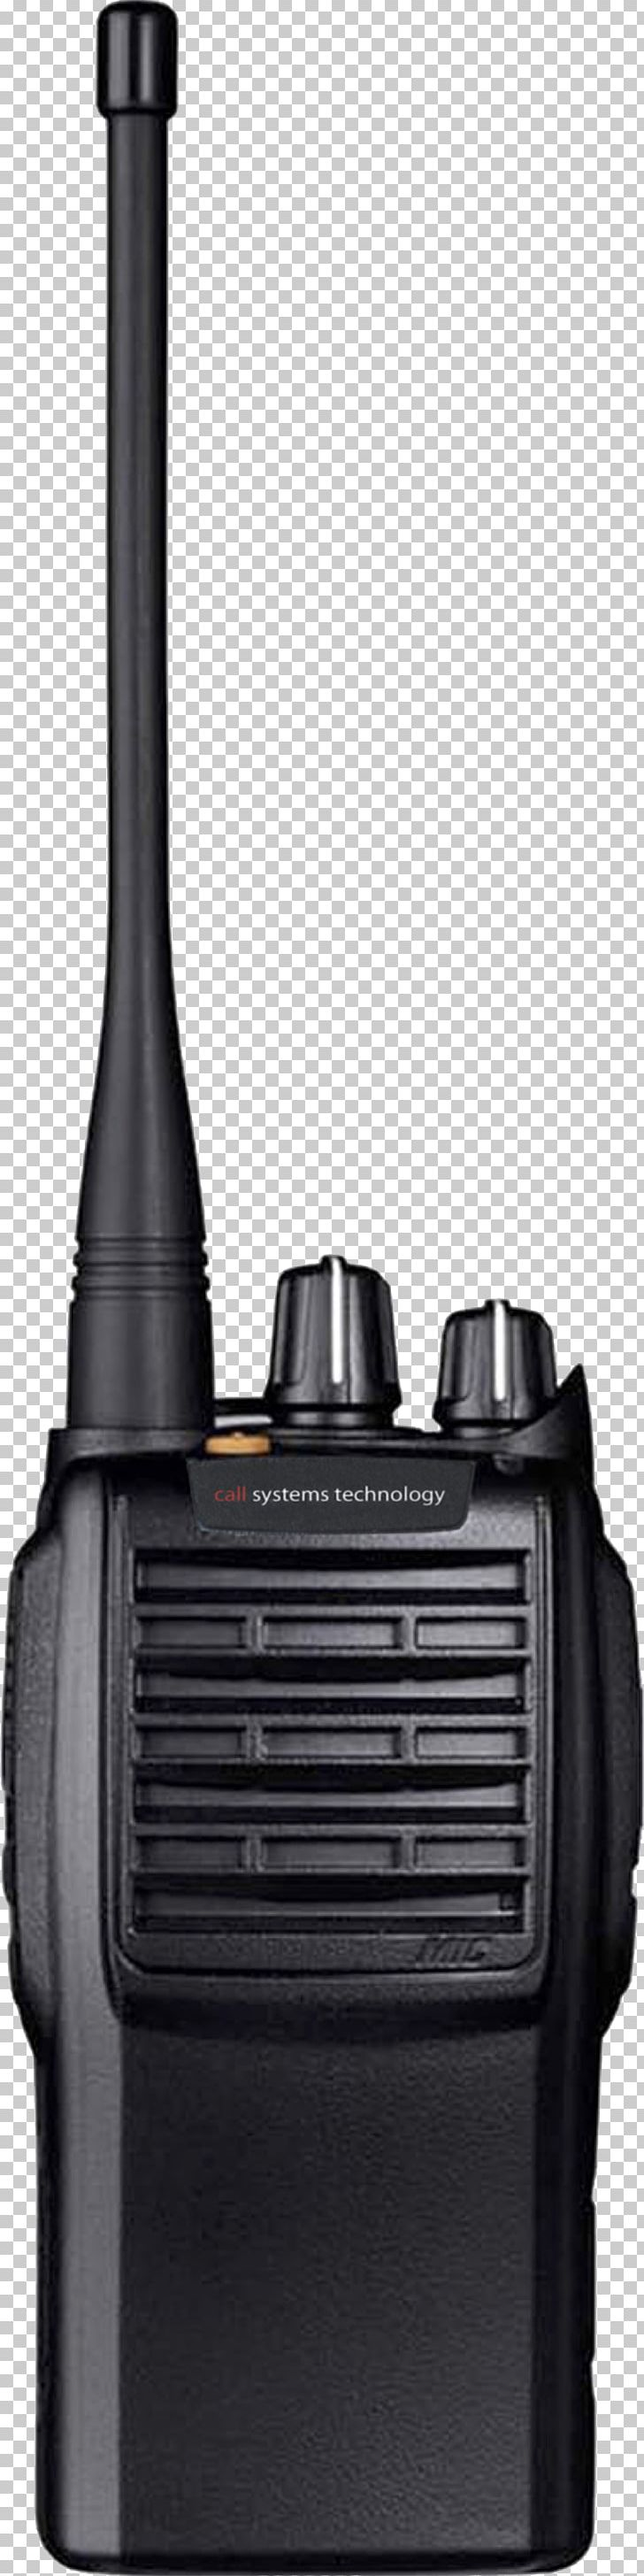 Two-way Radio Walkie-talkie Marine VHF Radio Very High Frequency PNG, Clipart, Communication, Electronics, Marine Vhf Radio, Music, Radio Free PNG Download